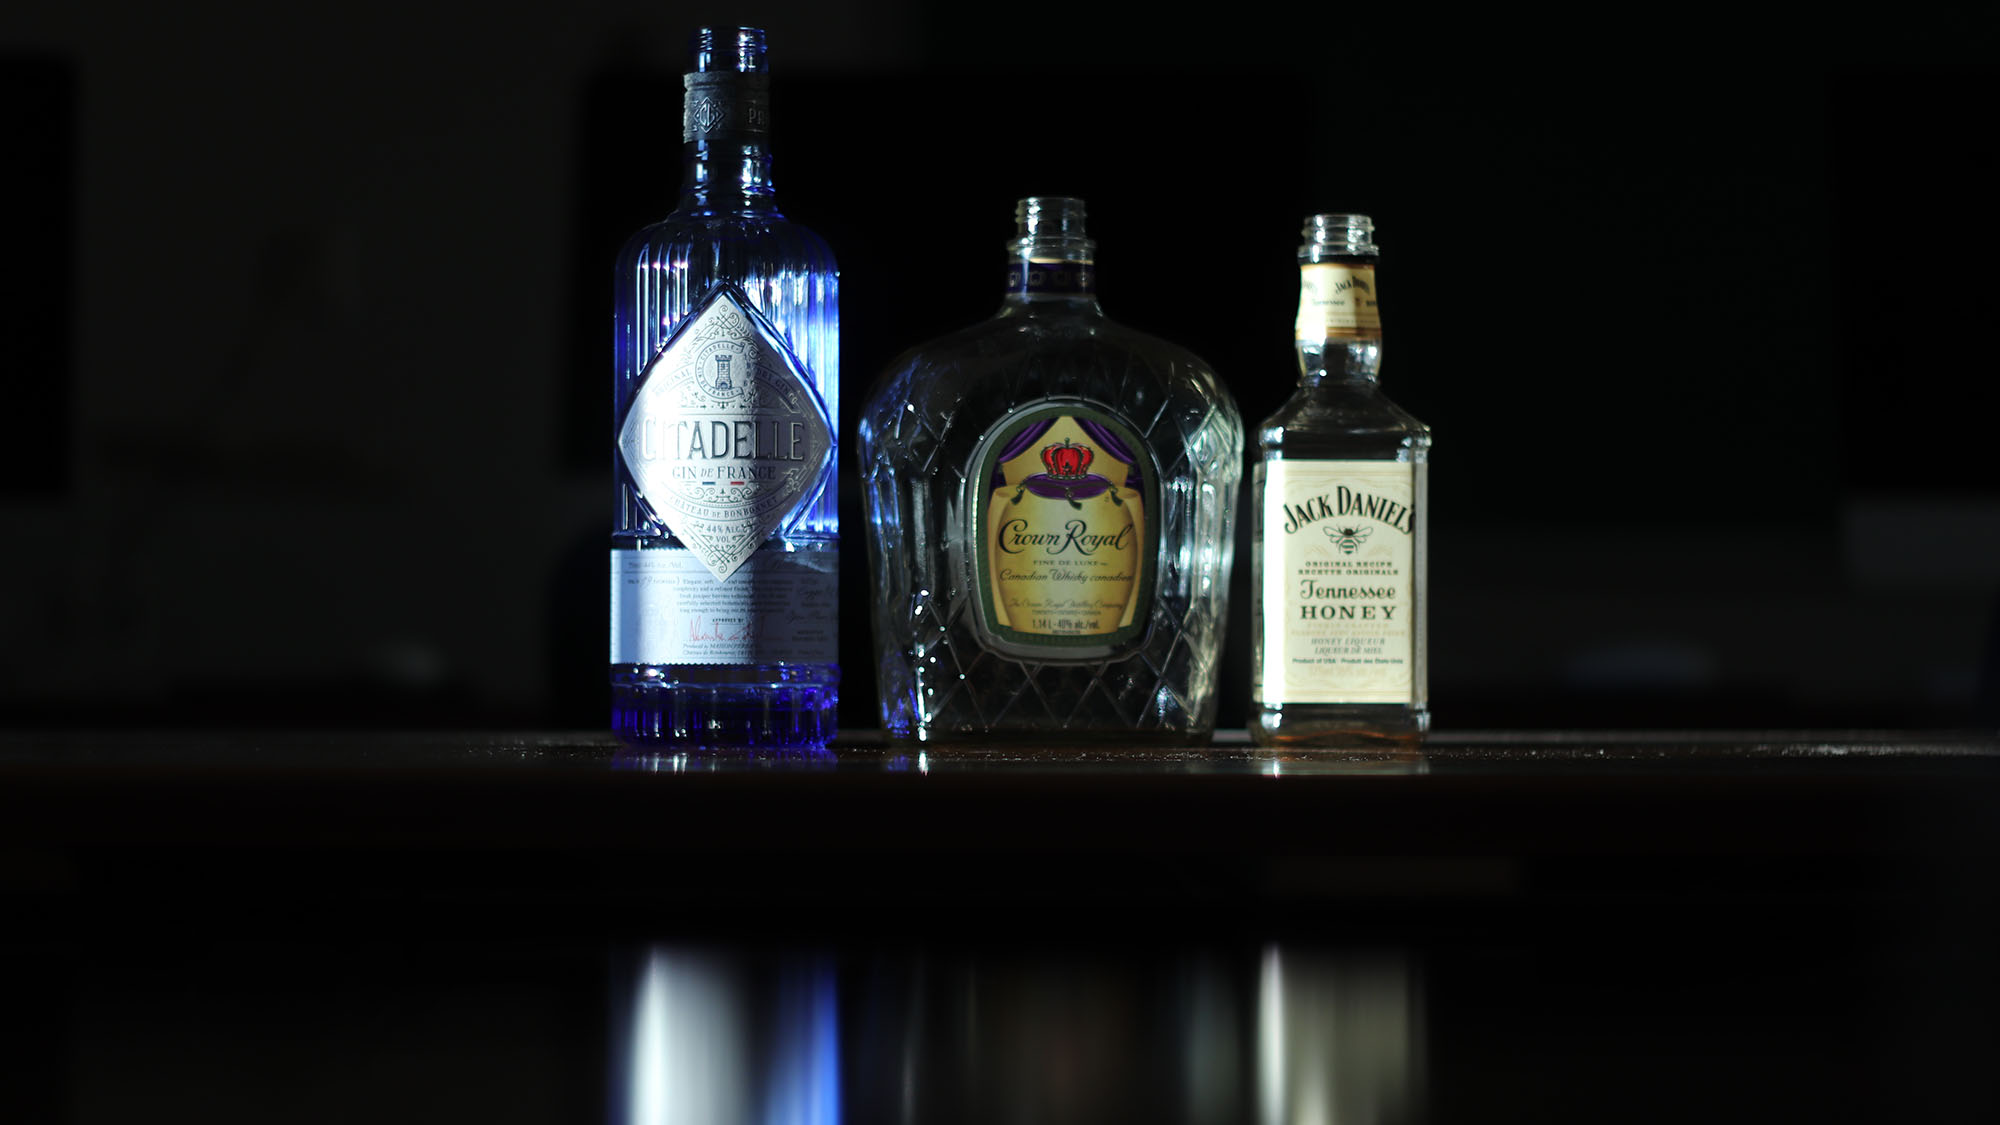 Photo illustration of bottles.